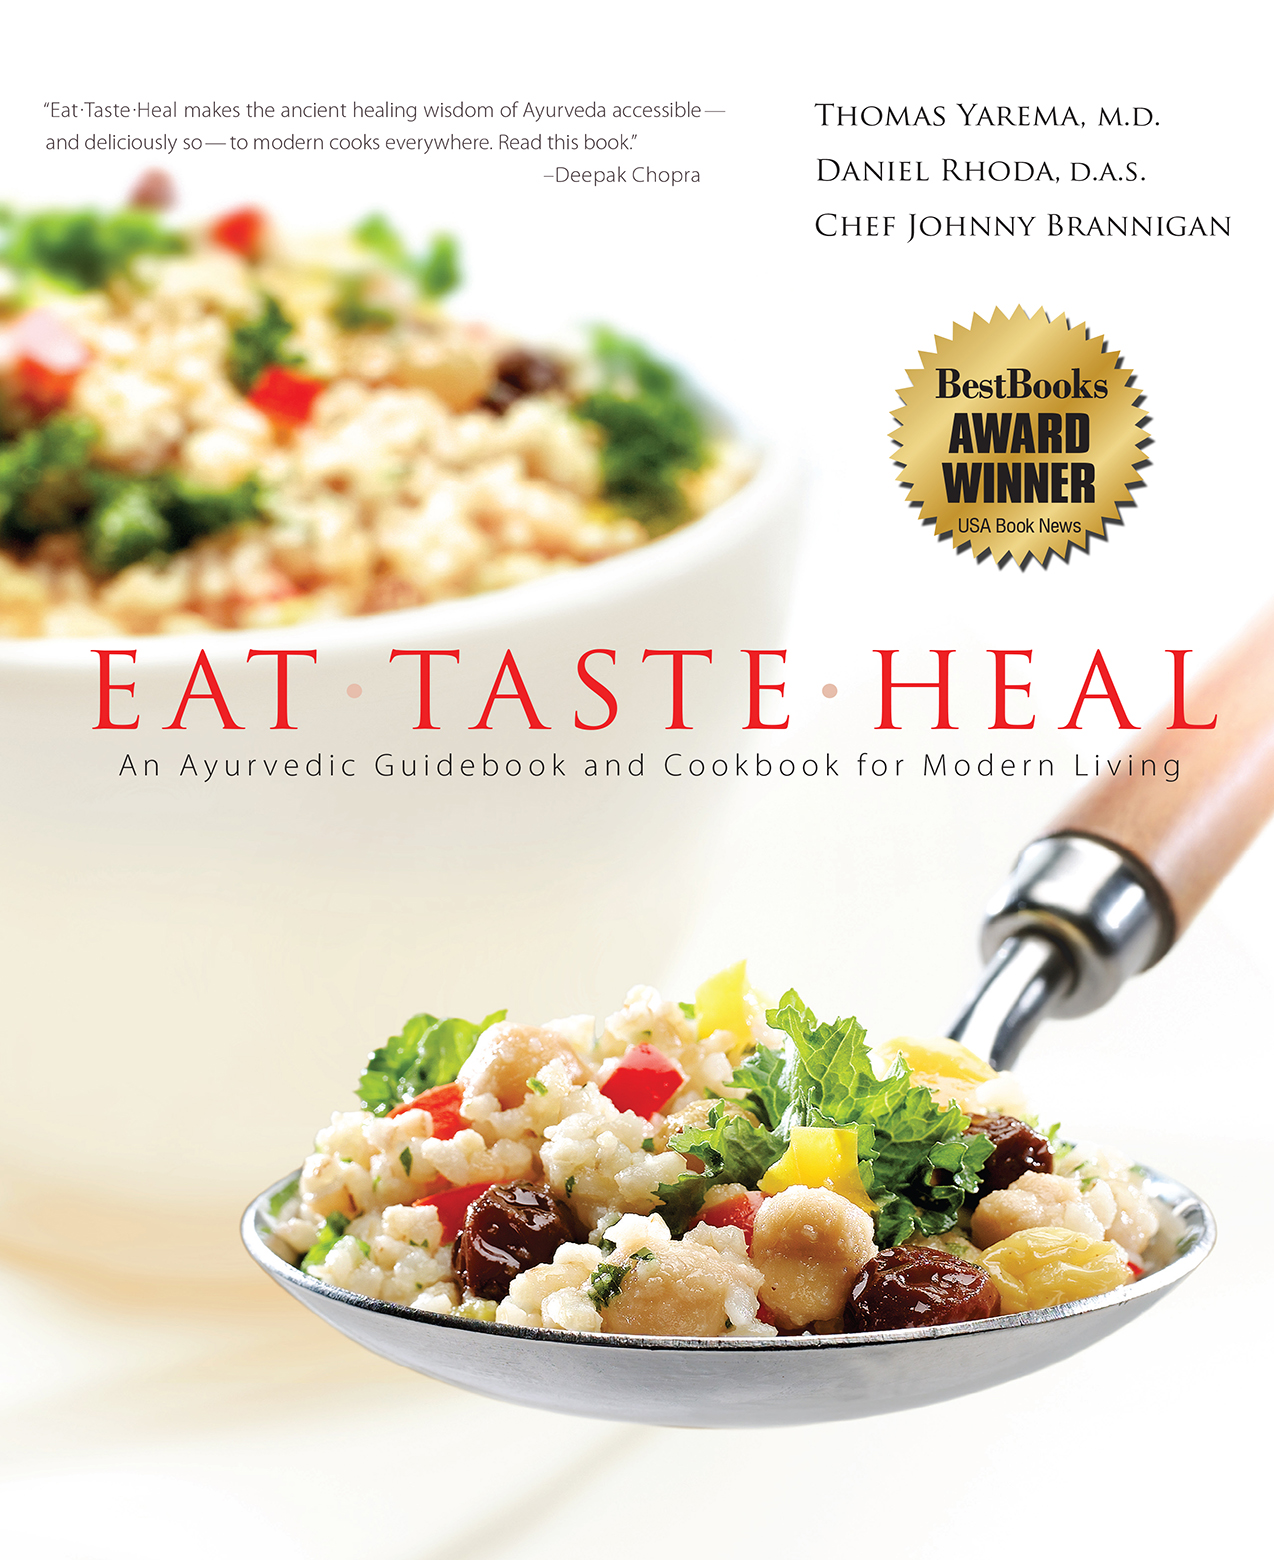 EAT TASTE HEAL: Ayurvedic Cookbook and Ancient Wisdom of Ayurveda